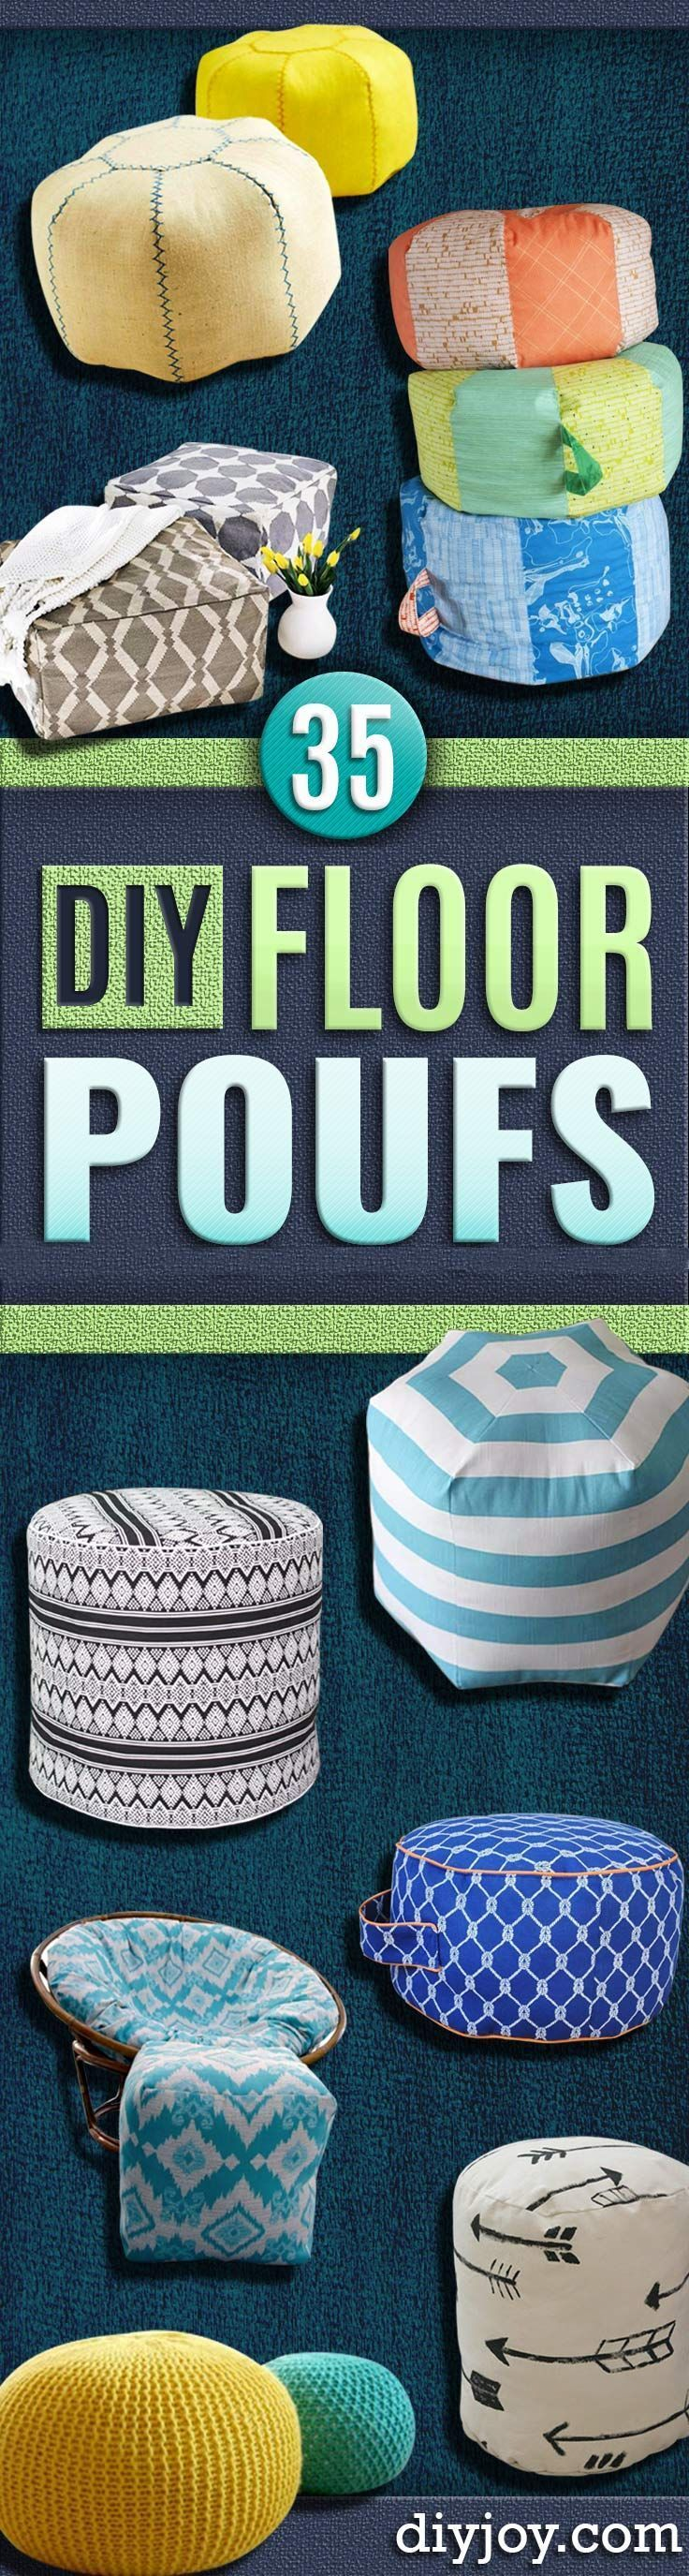 32 Fabulous DIY Poufs Your Living Room Needs Right Now! Part 53